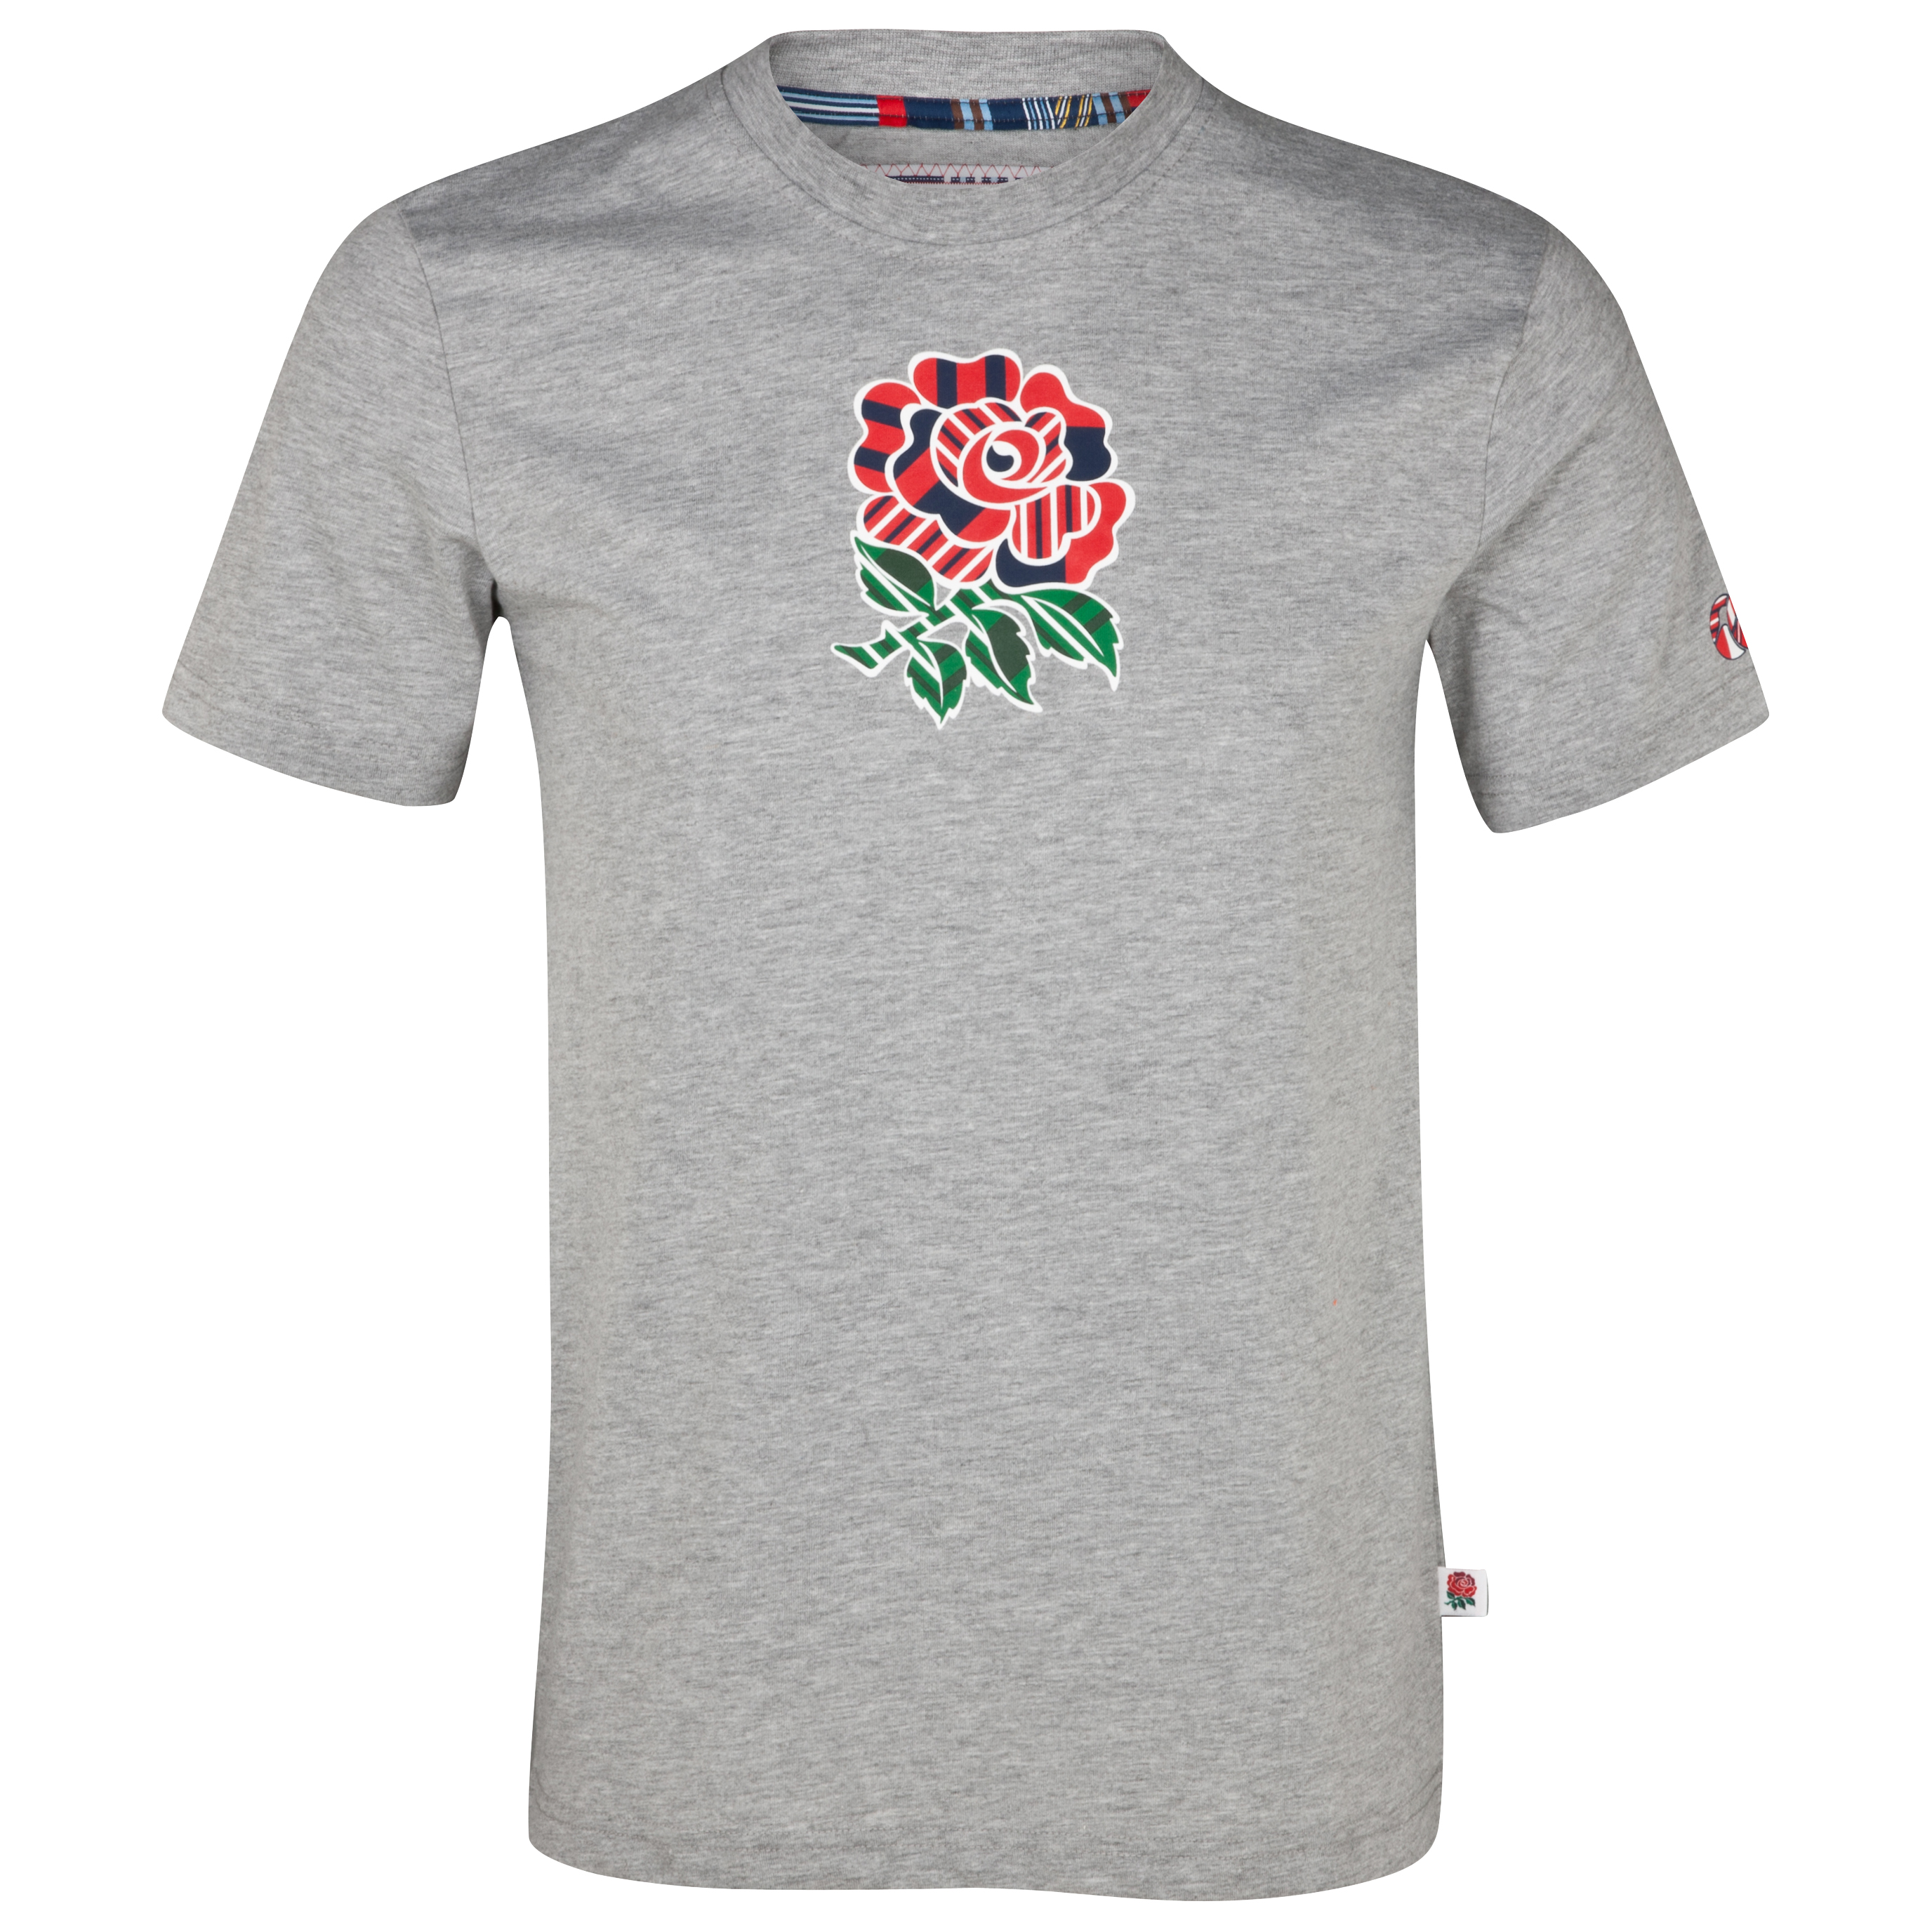 England Uglies Cotton Rose T-Shirt - Classic Marl